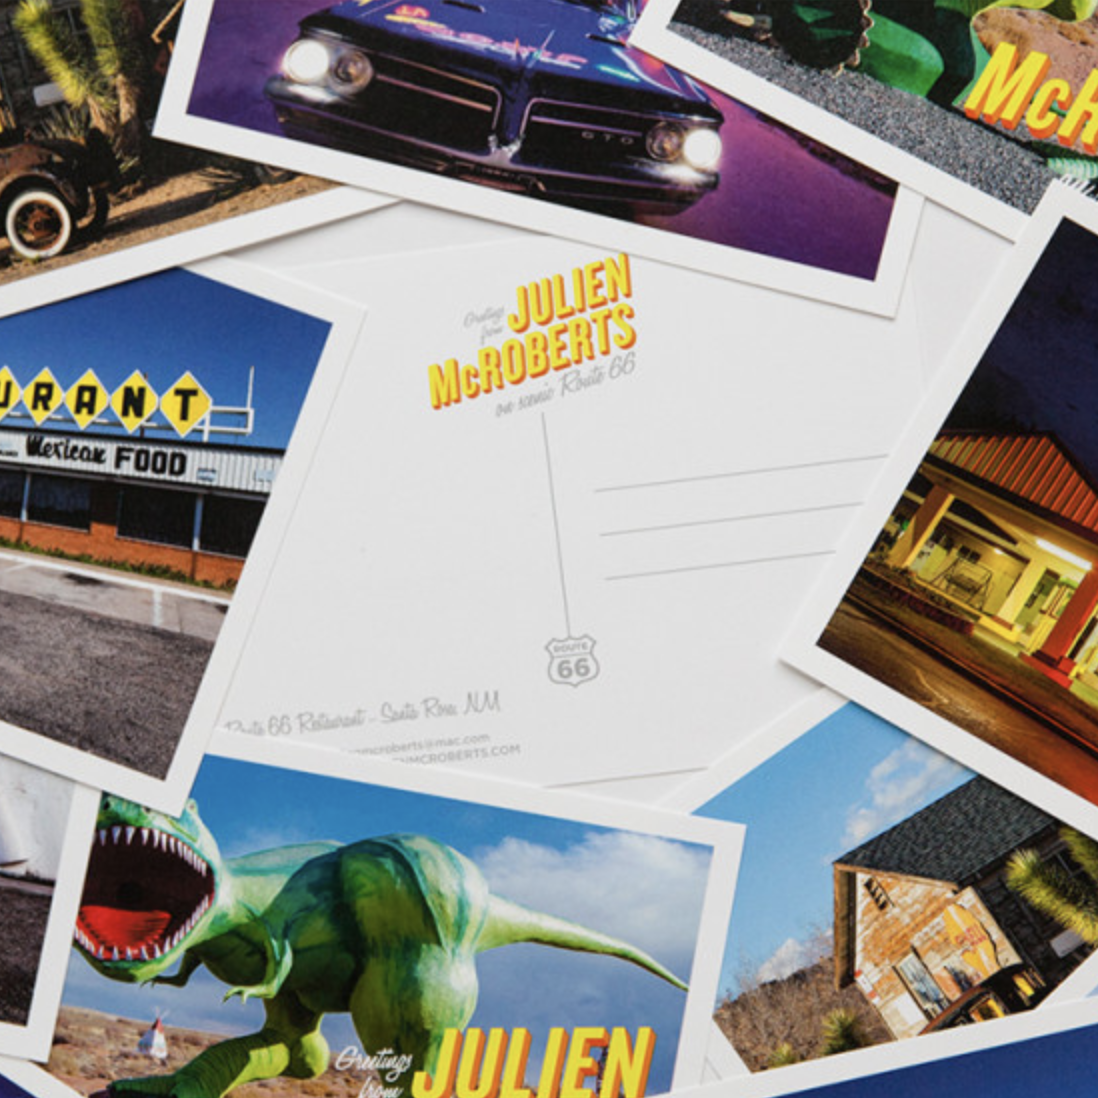 Design: Postcards from Route 66